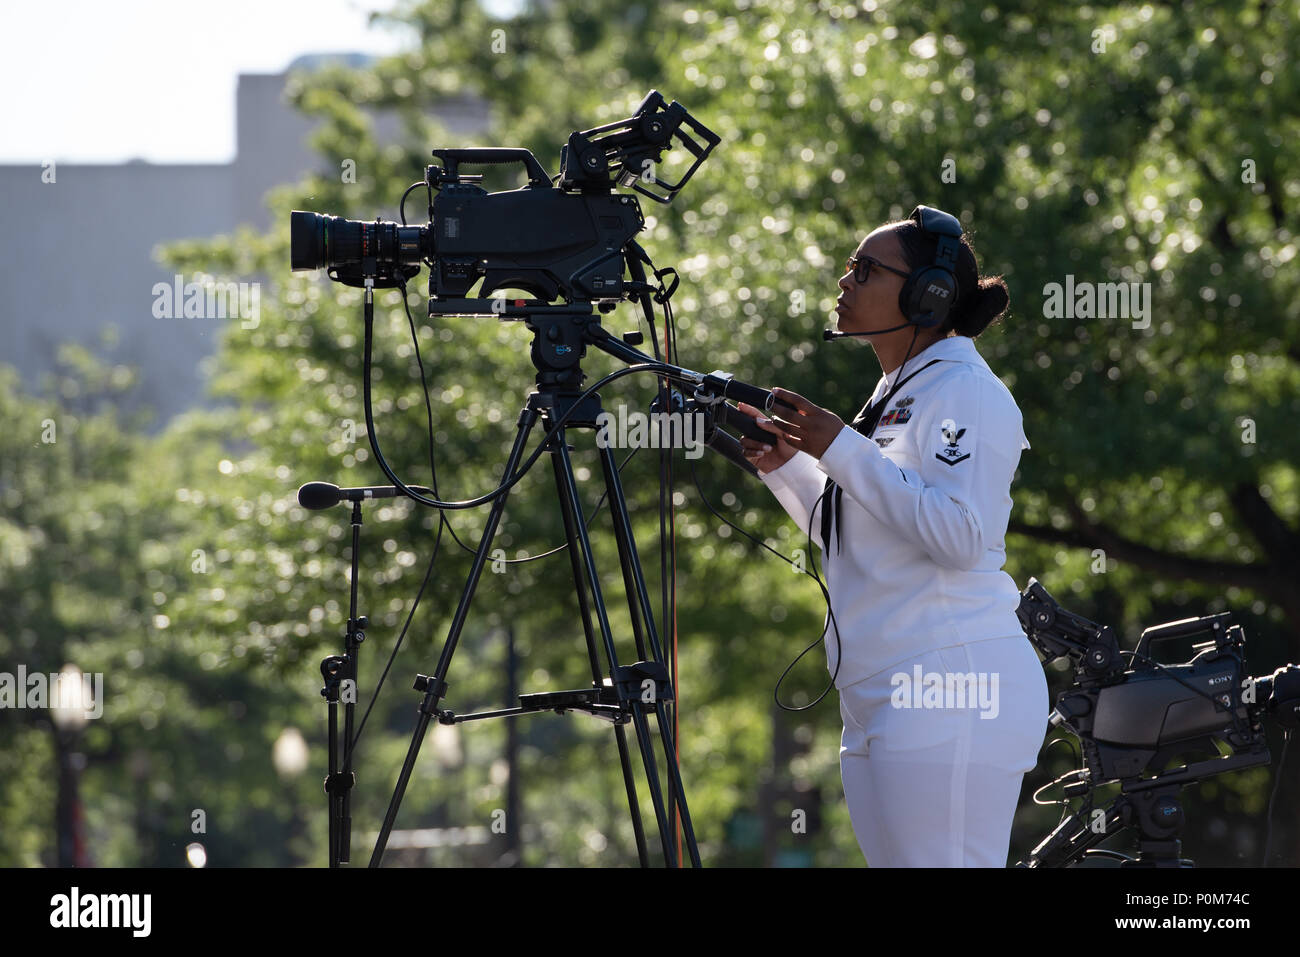 180605-N-HG258-1003 WASHINGTON (June 5, 2018) Mass Communications Specalist 3rd Class Briana Bowens videotapes the commemoration of the 76th anniversary of the Battle of Midway at the U.S. Navy Memorial in Washington, D.C. The Battle of Midway stands as one of the U.S. Navy's most historically significant naval battles. Fought on the high seas of the Pacific more than half a century ago, this battle altered the course of the war in the Pacific and thereby shaped the outcome of world events. (U.S. Navy photo by Senior Chief Musician Stephen Hassay/Released) - Stock Image